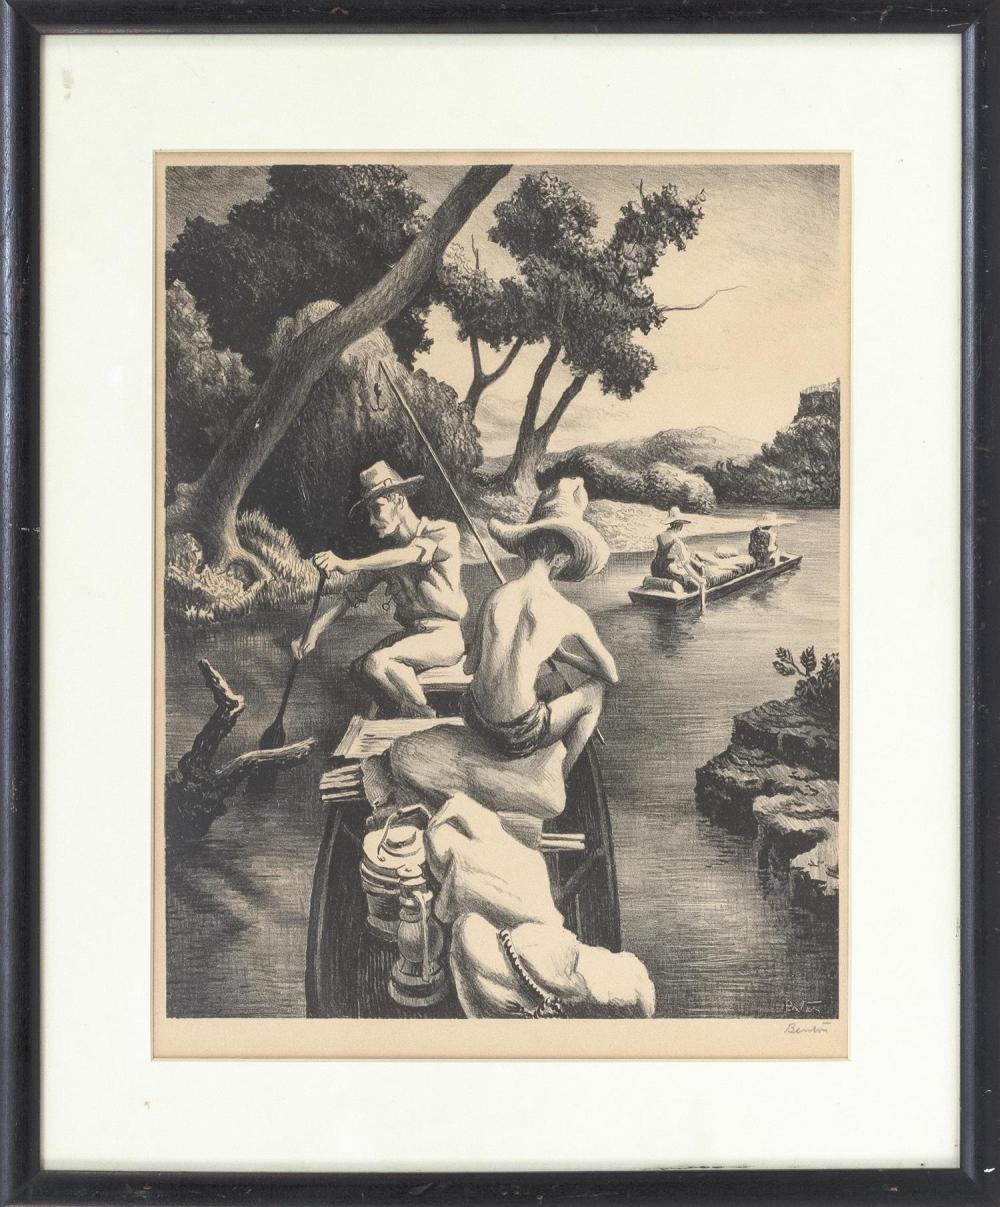 "THOMAS HART BENTON, Missouri/Massachusetts/Kansas, 1889-1975, ""Down The River"" 1939., Lithograph on rives paper, image size 12.5"" x..."